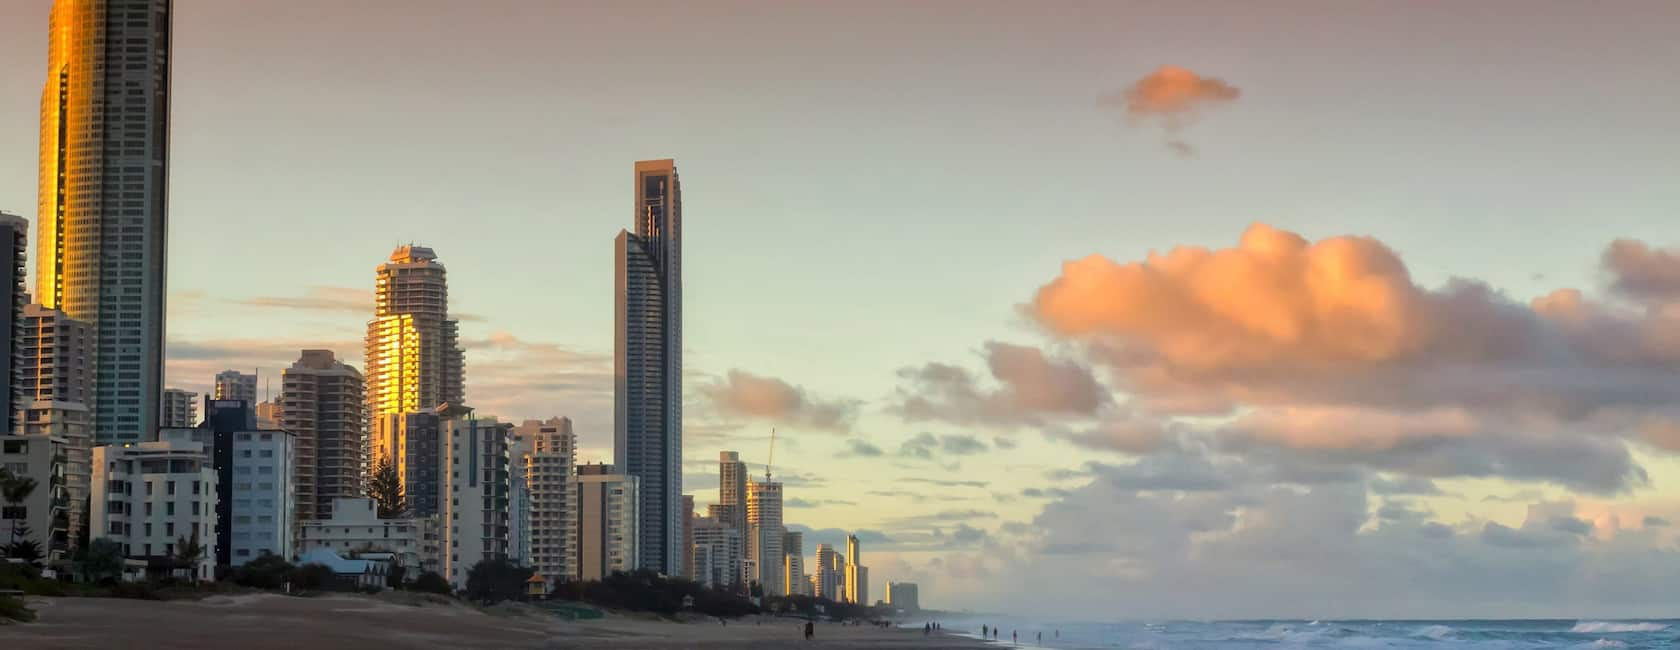 Holiday rentals in Broadbeach